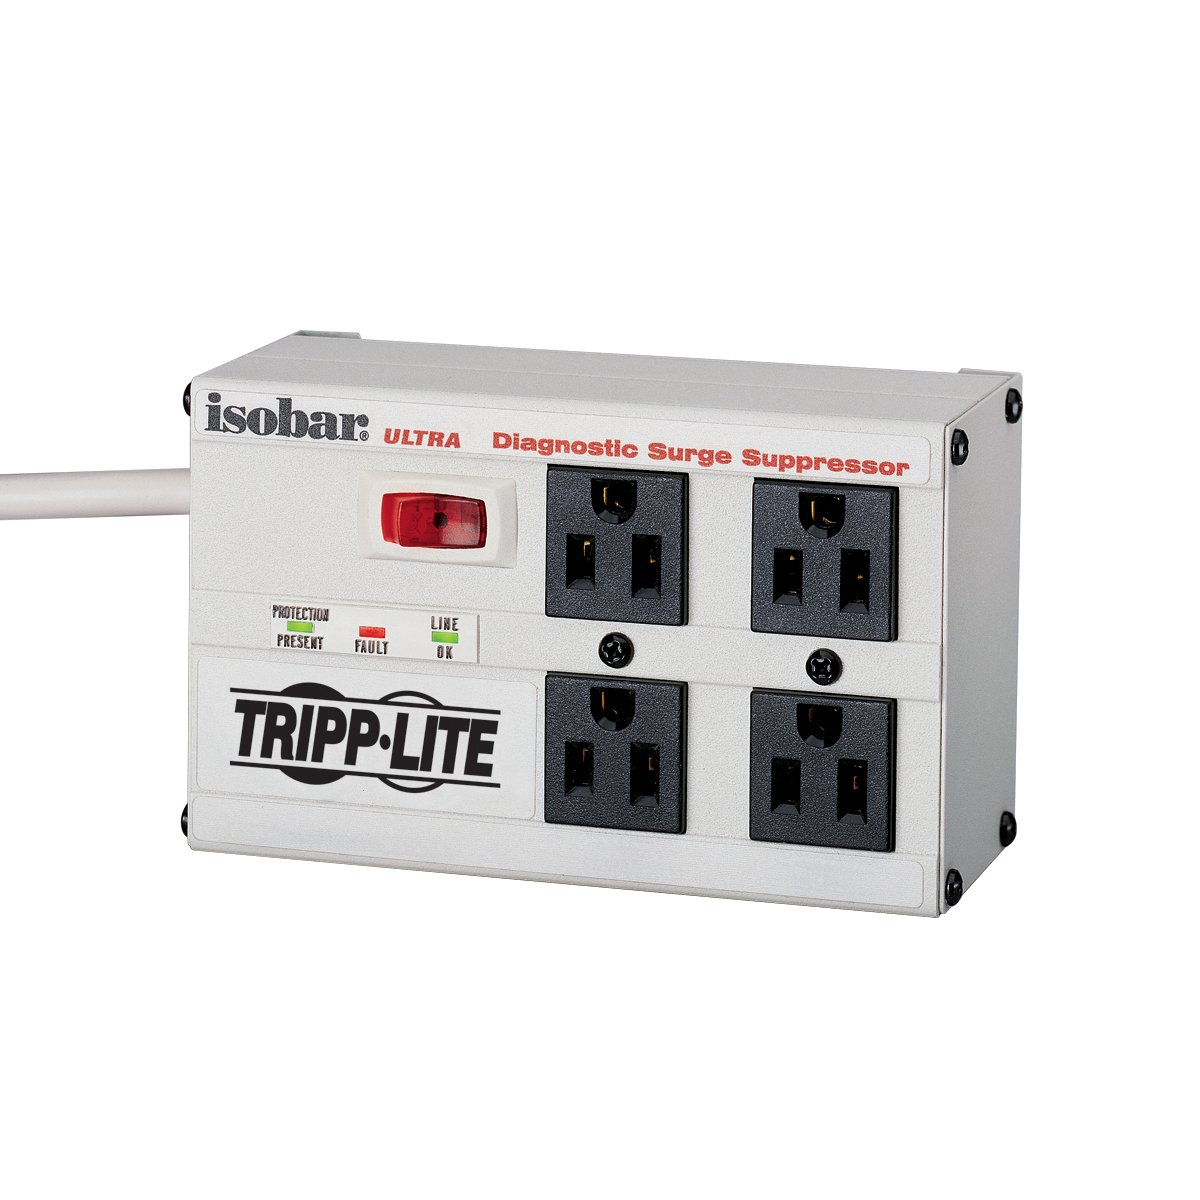 Tripp Lite Isobar 4 Outlet Surge Protector Power Strip Switch Wiring1 Diagram Diagosis 6ft Cord Right Angle Plug Metal Lifetime Limited Warranty 50000 Insurance